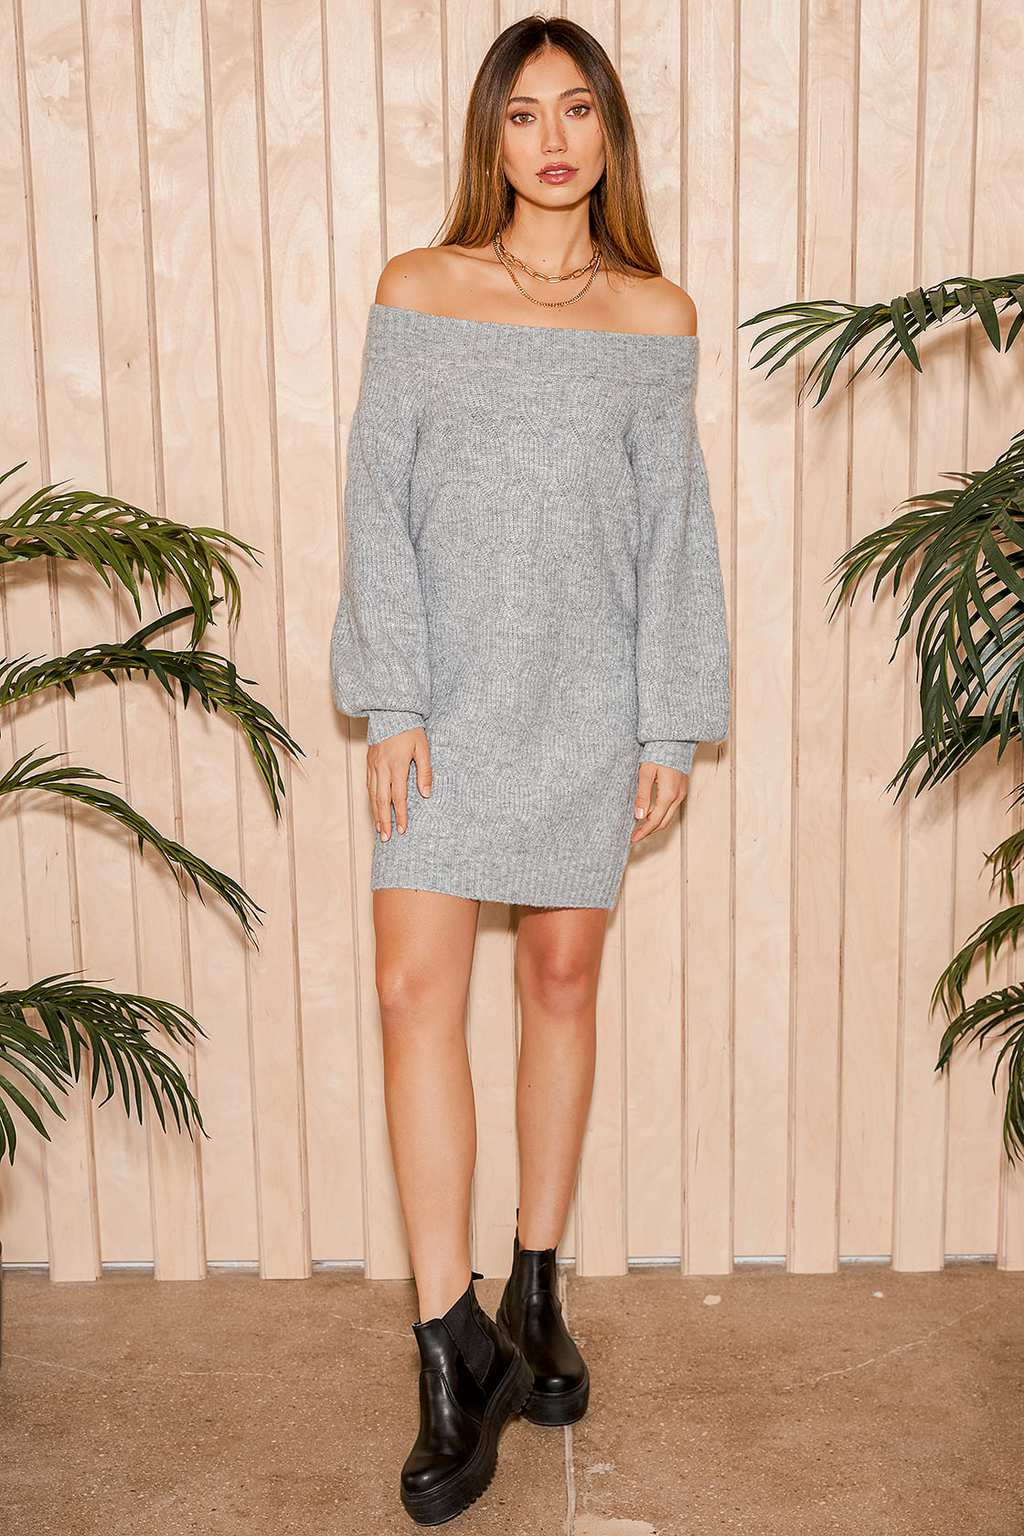 Grey sweater dress from Lulus